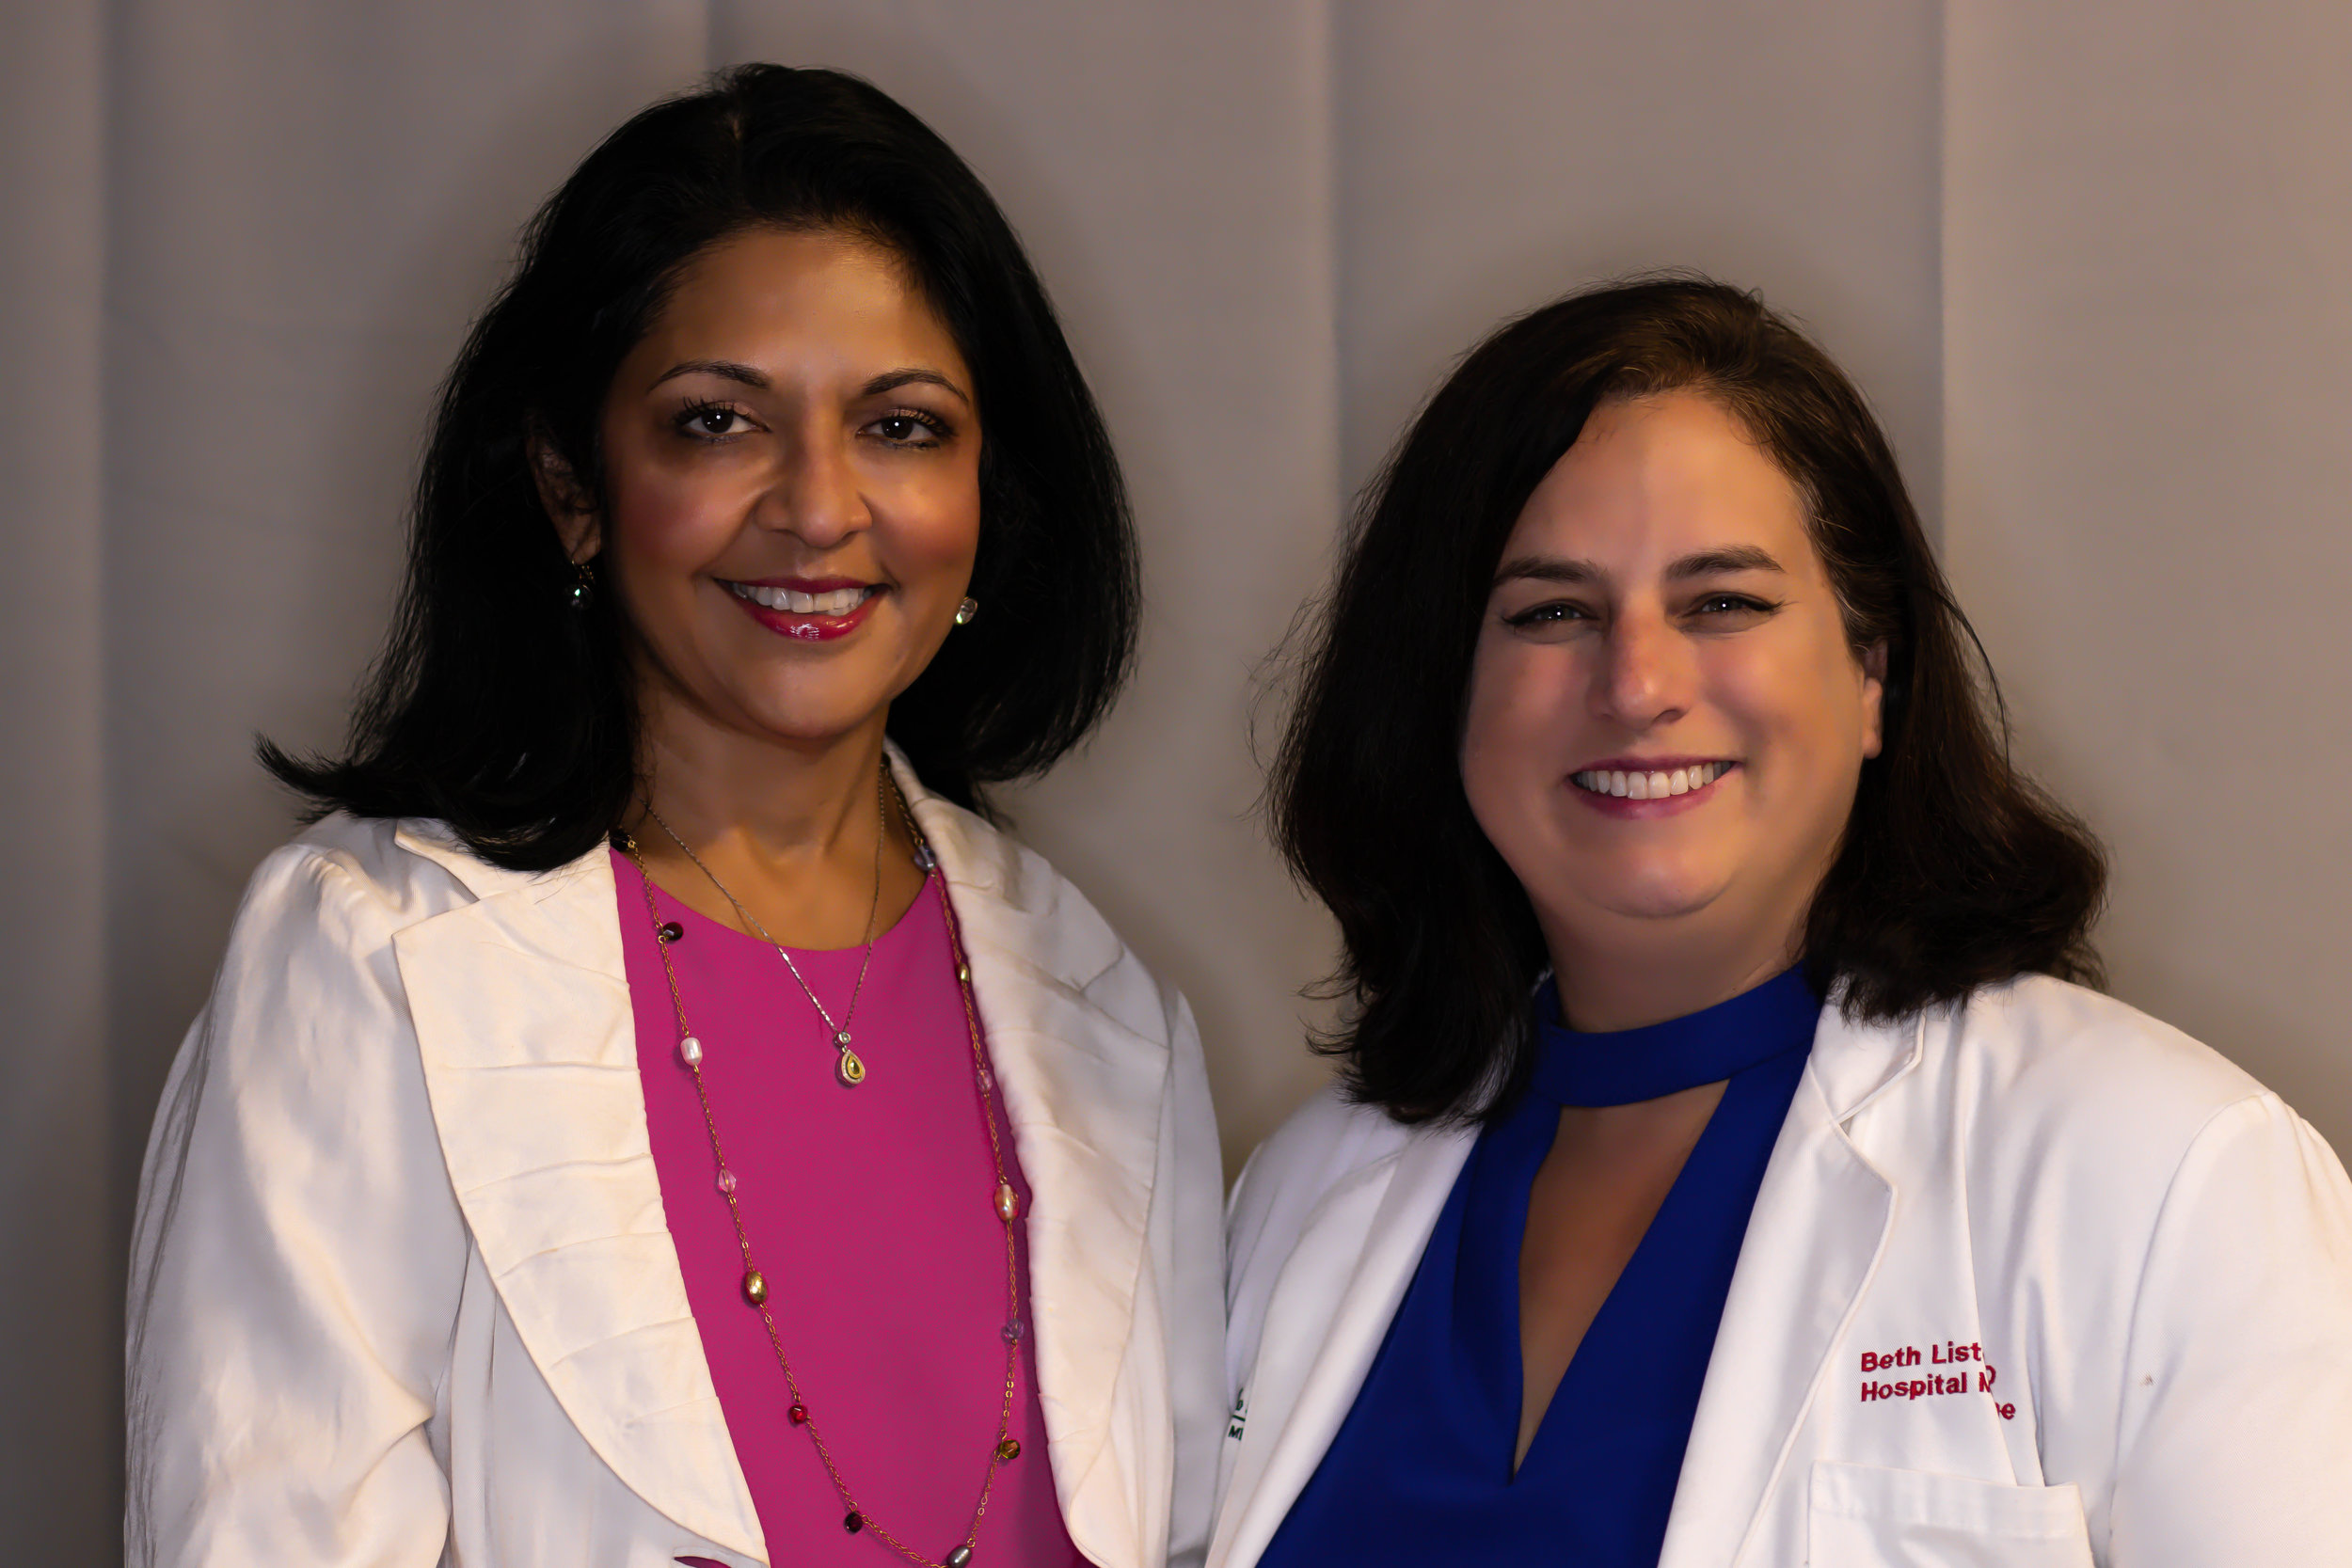 (Left) Dr. Anita Somani, Immediate Past President of the CMA, (Right) Dr. Beth Liston, current CMA President-Elect